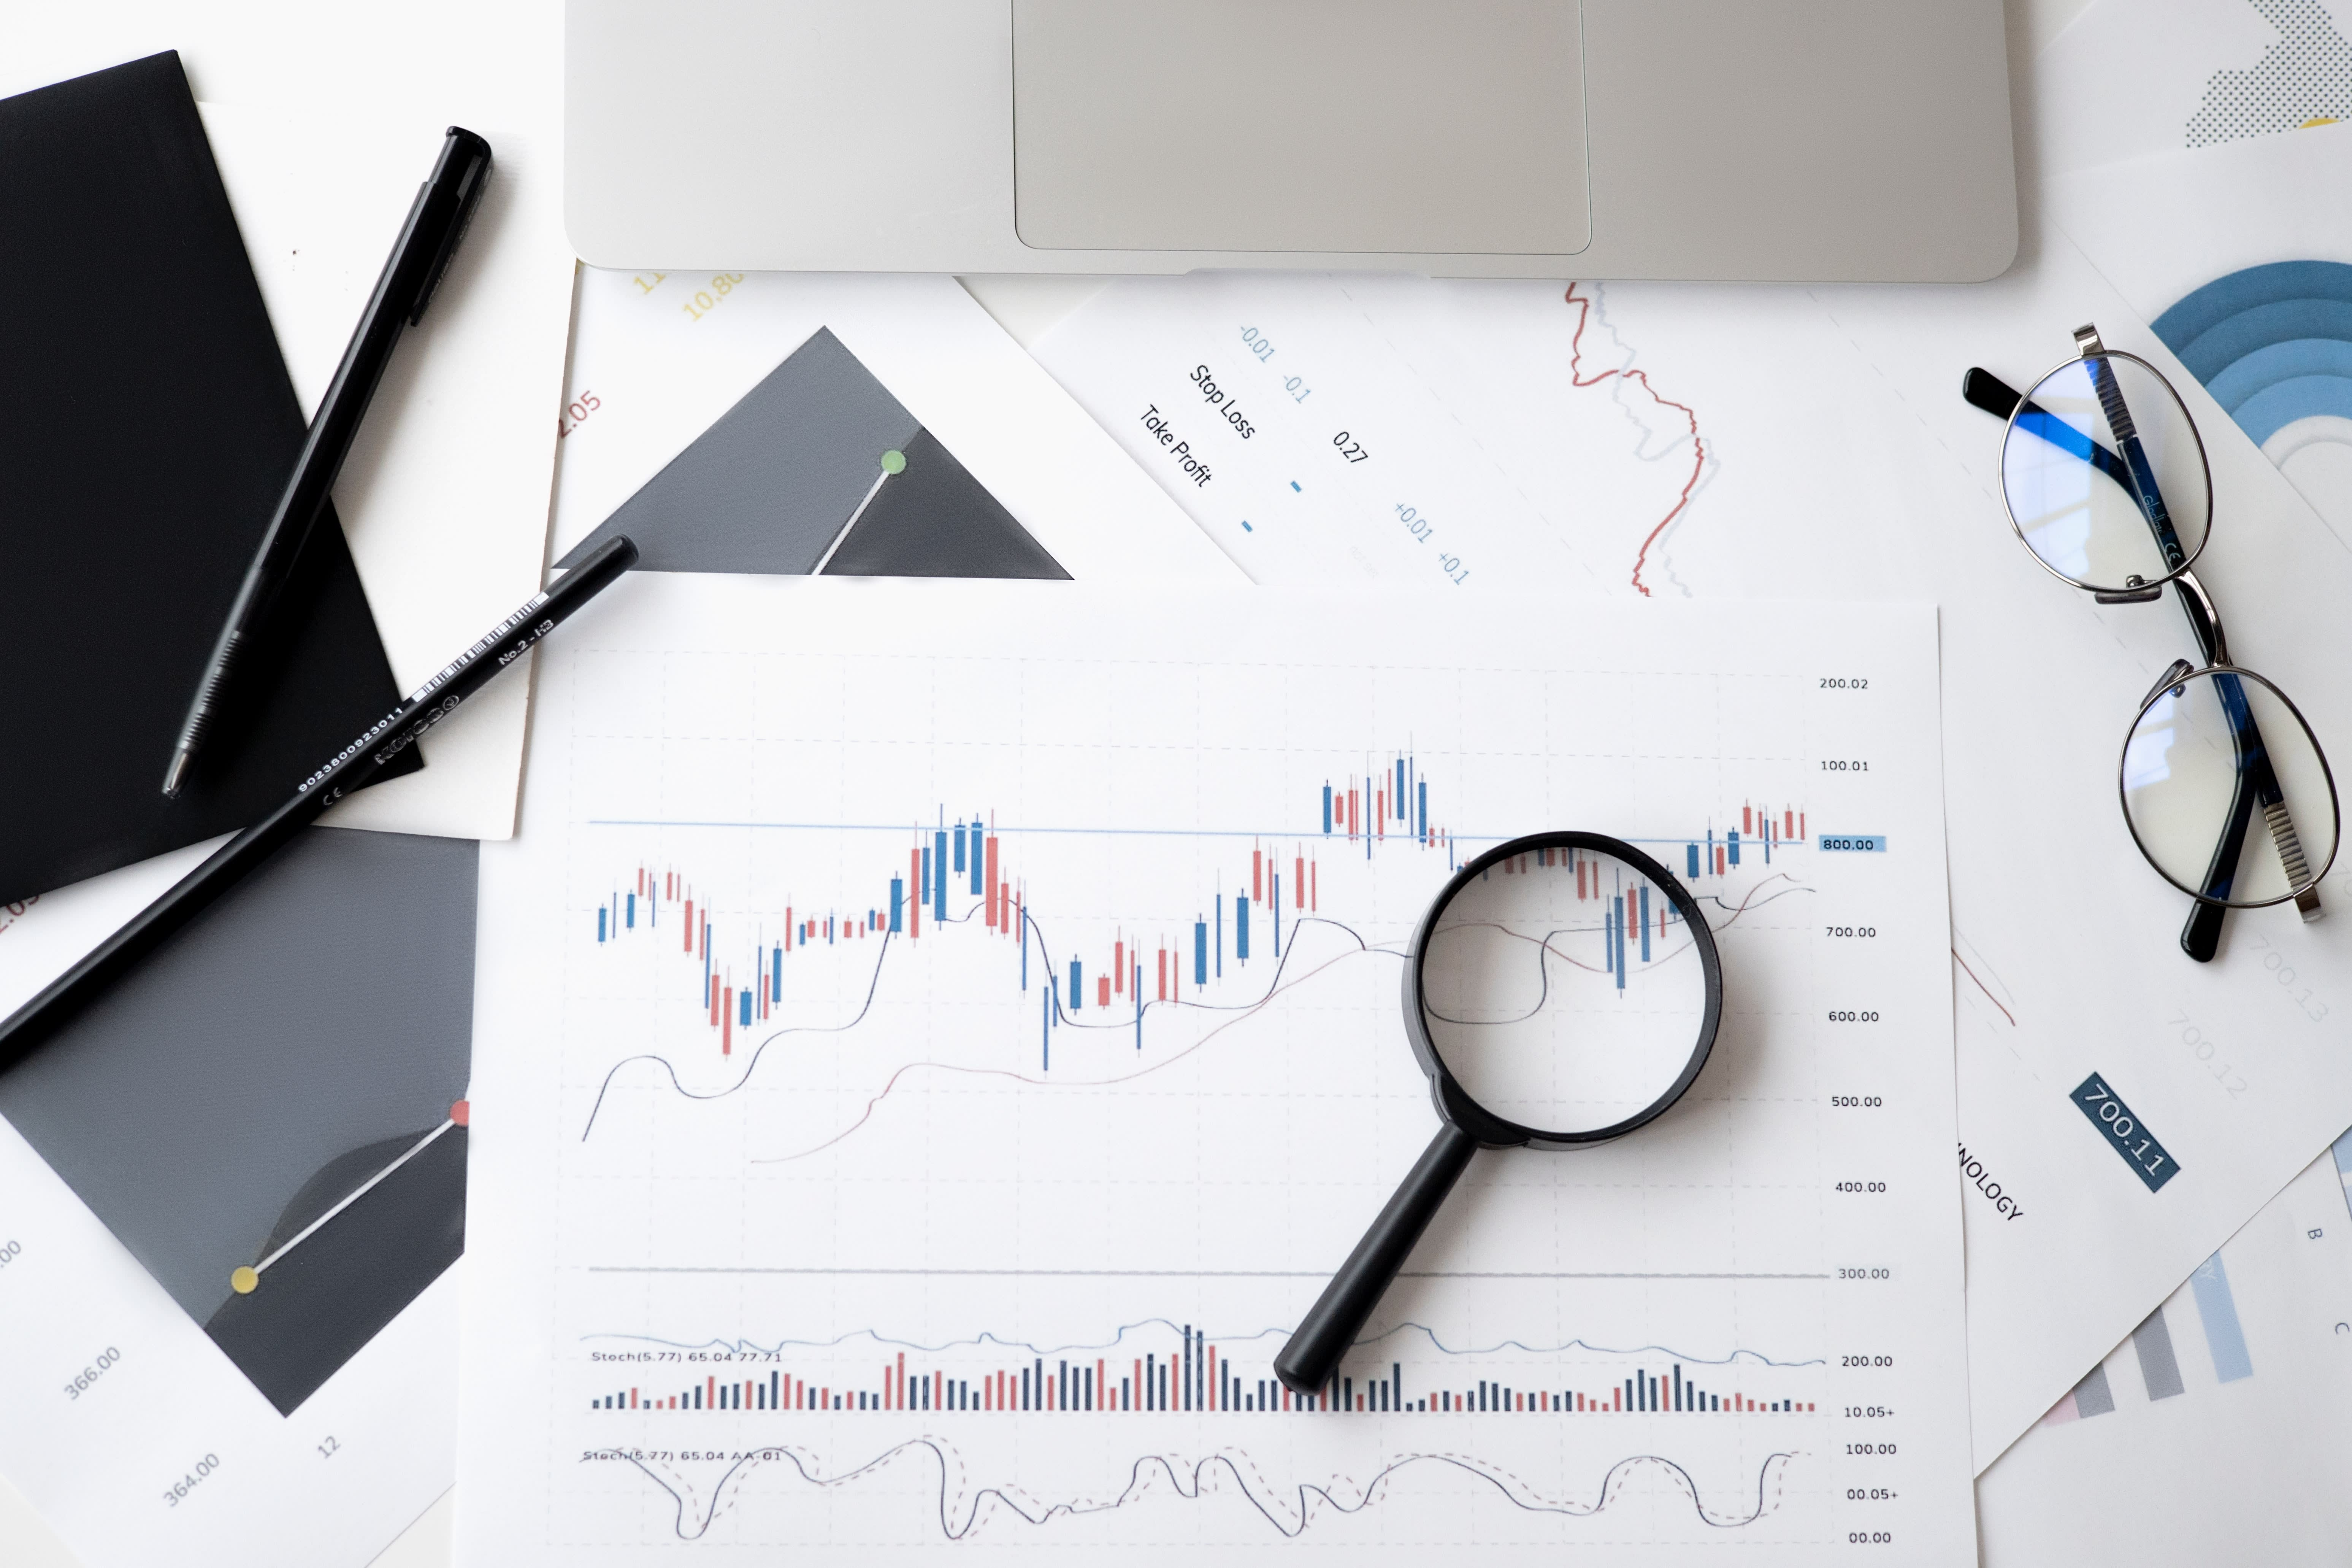 Advisers sticking with equities despite market uncertainty